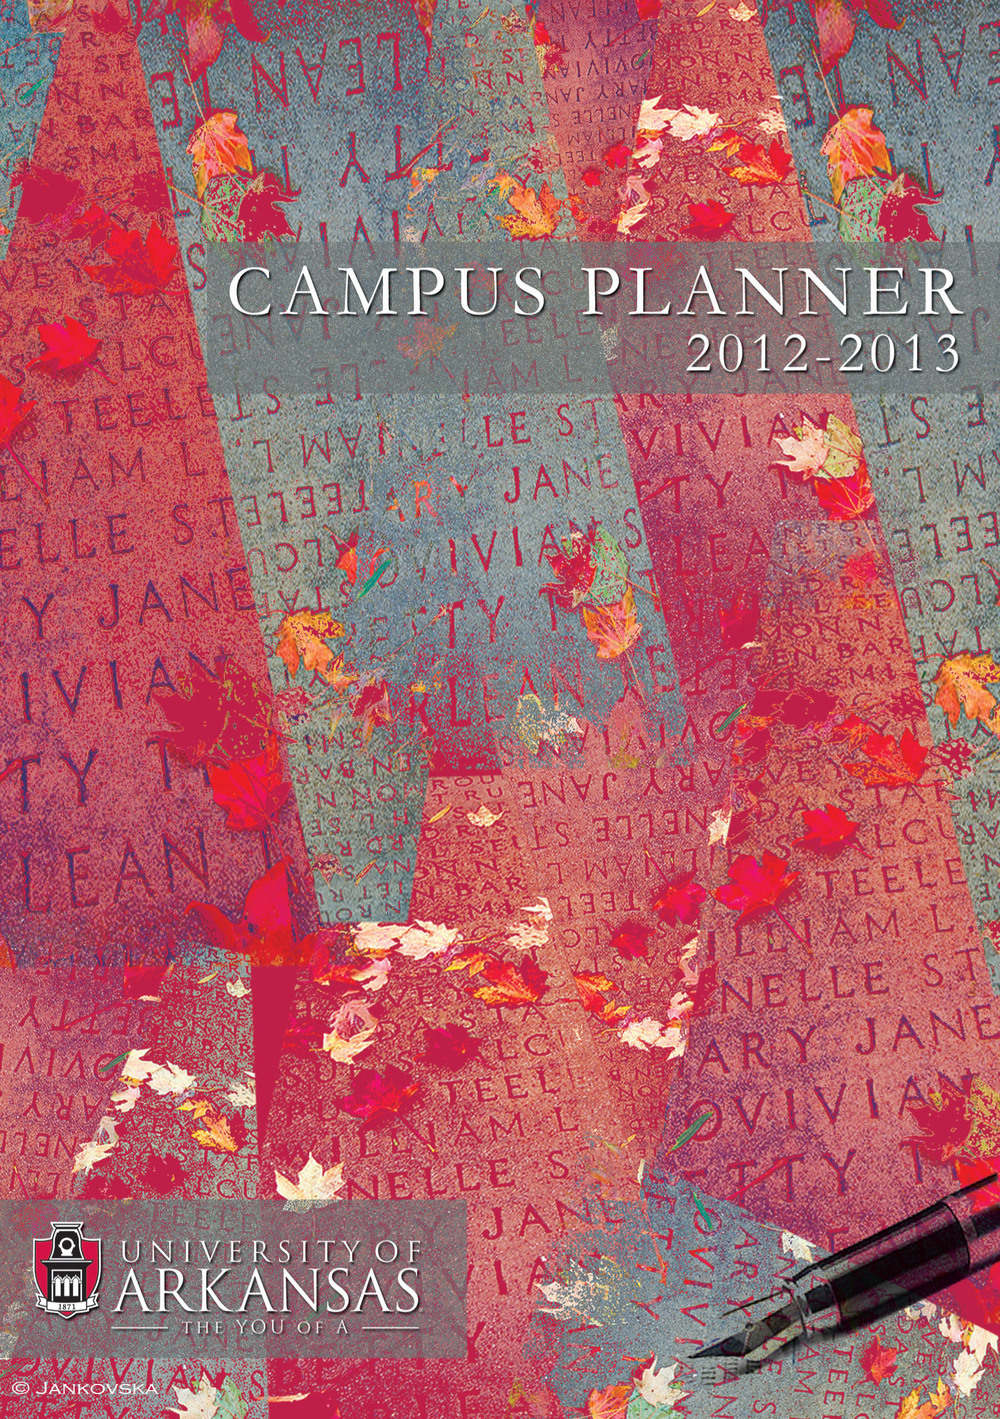 3-12 UA Campus Planner front cover.jpg